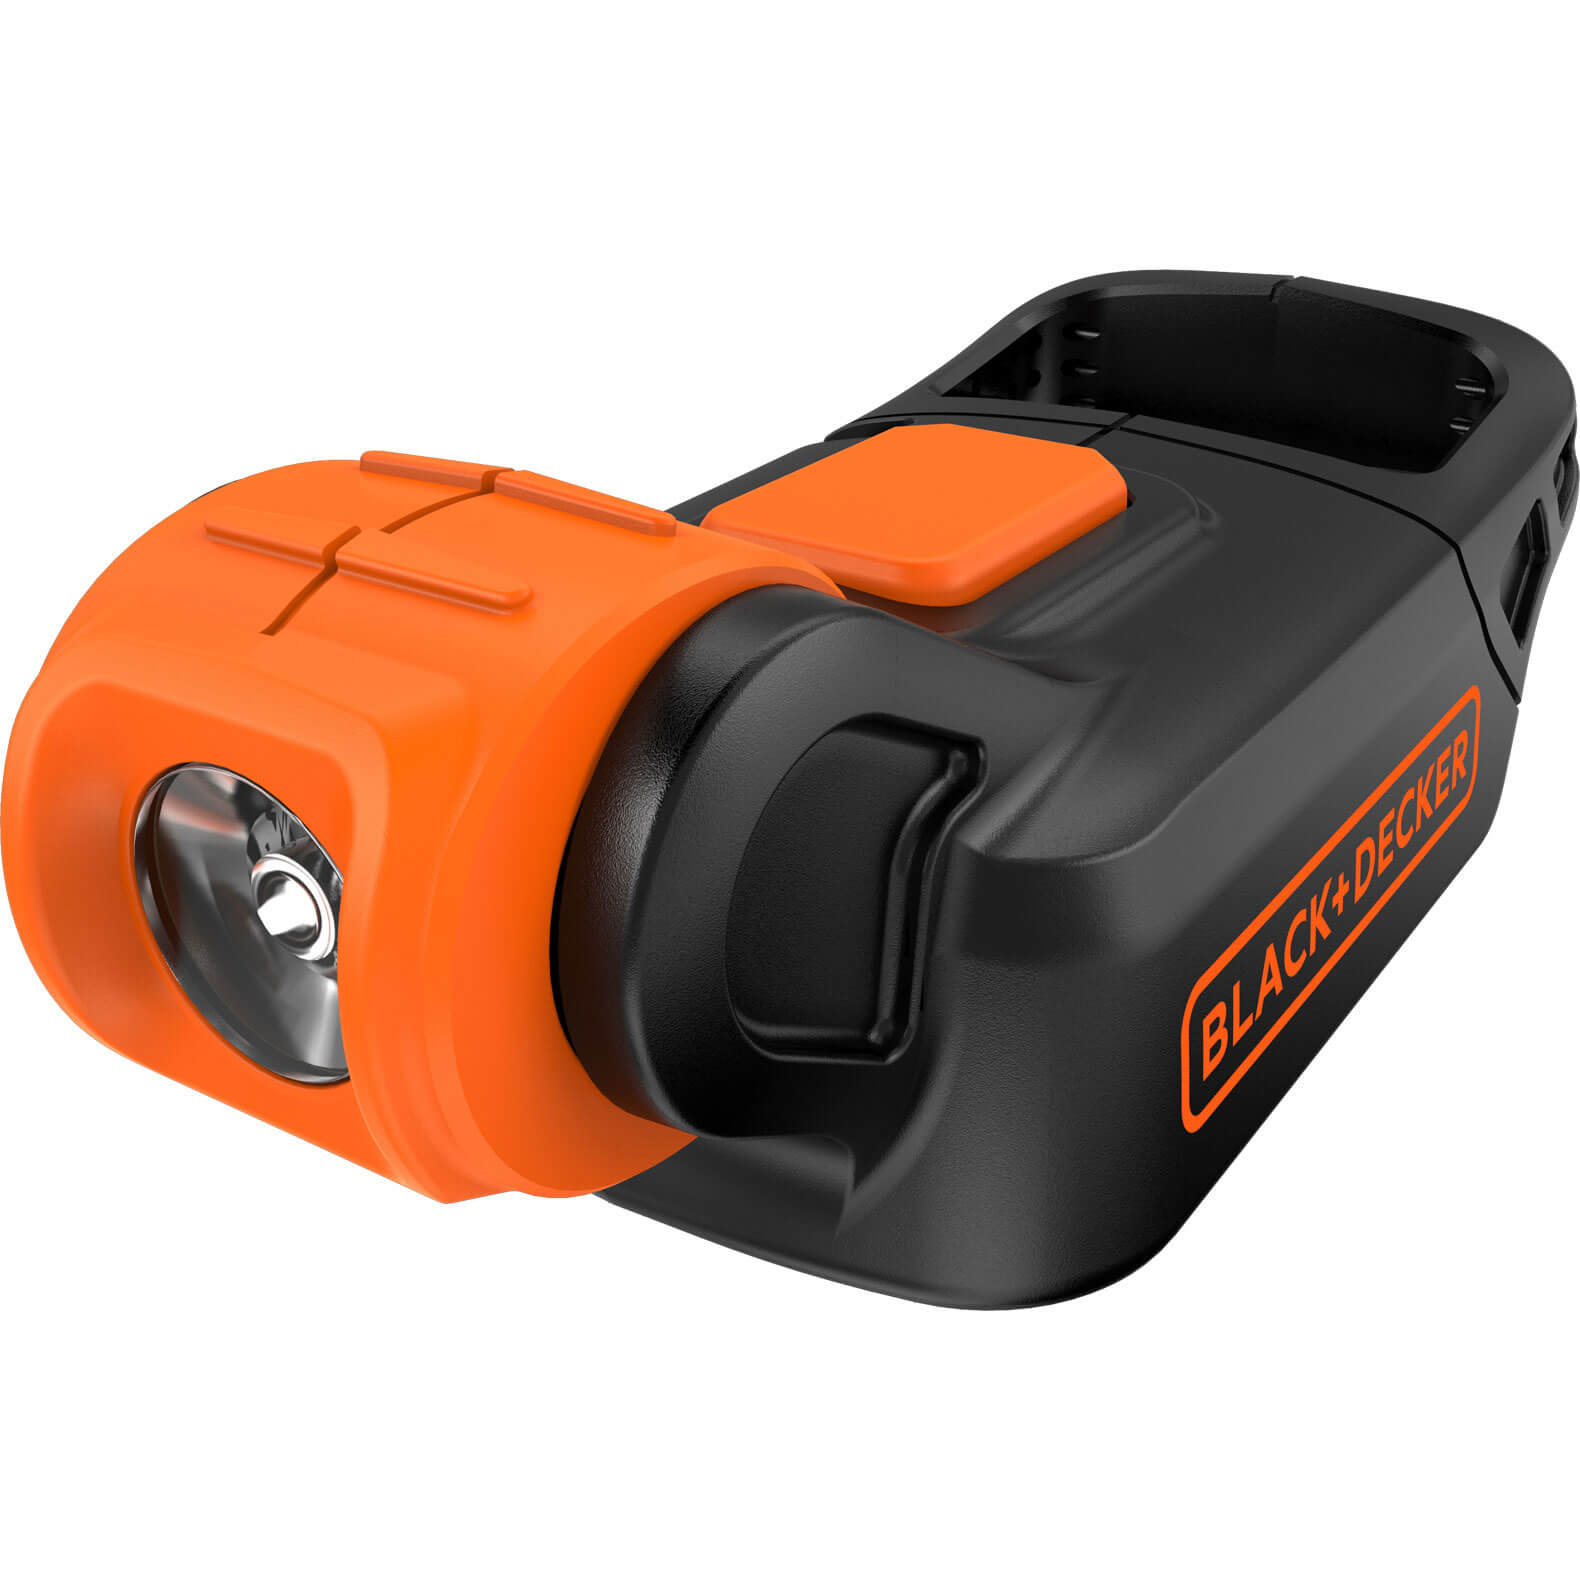 Black & Decker BDCCF18N 18v Cordless Compact Flash Light without Battery or Charger